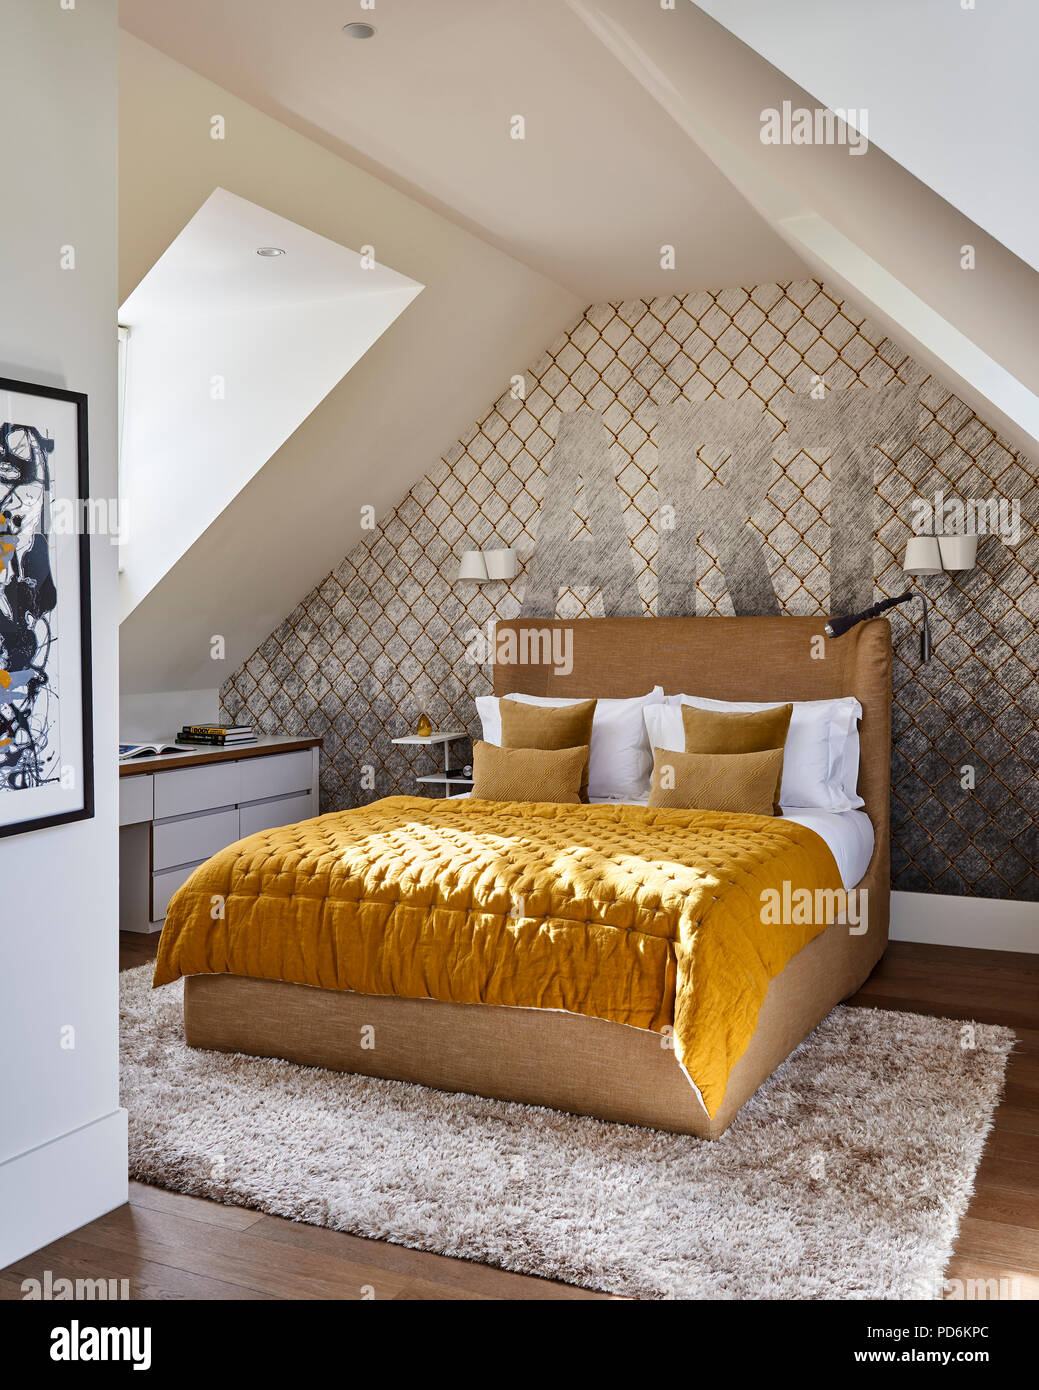 Yellow buttoned quilt on double bed below single word 'ART'. - Stock Image